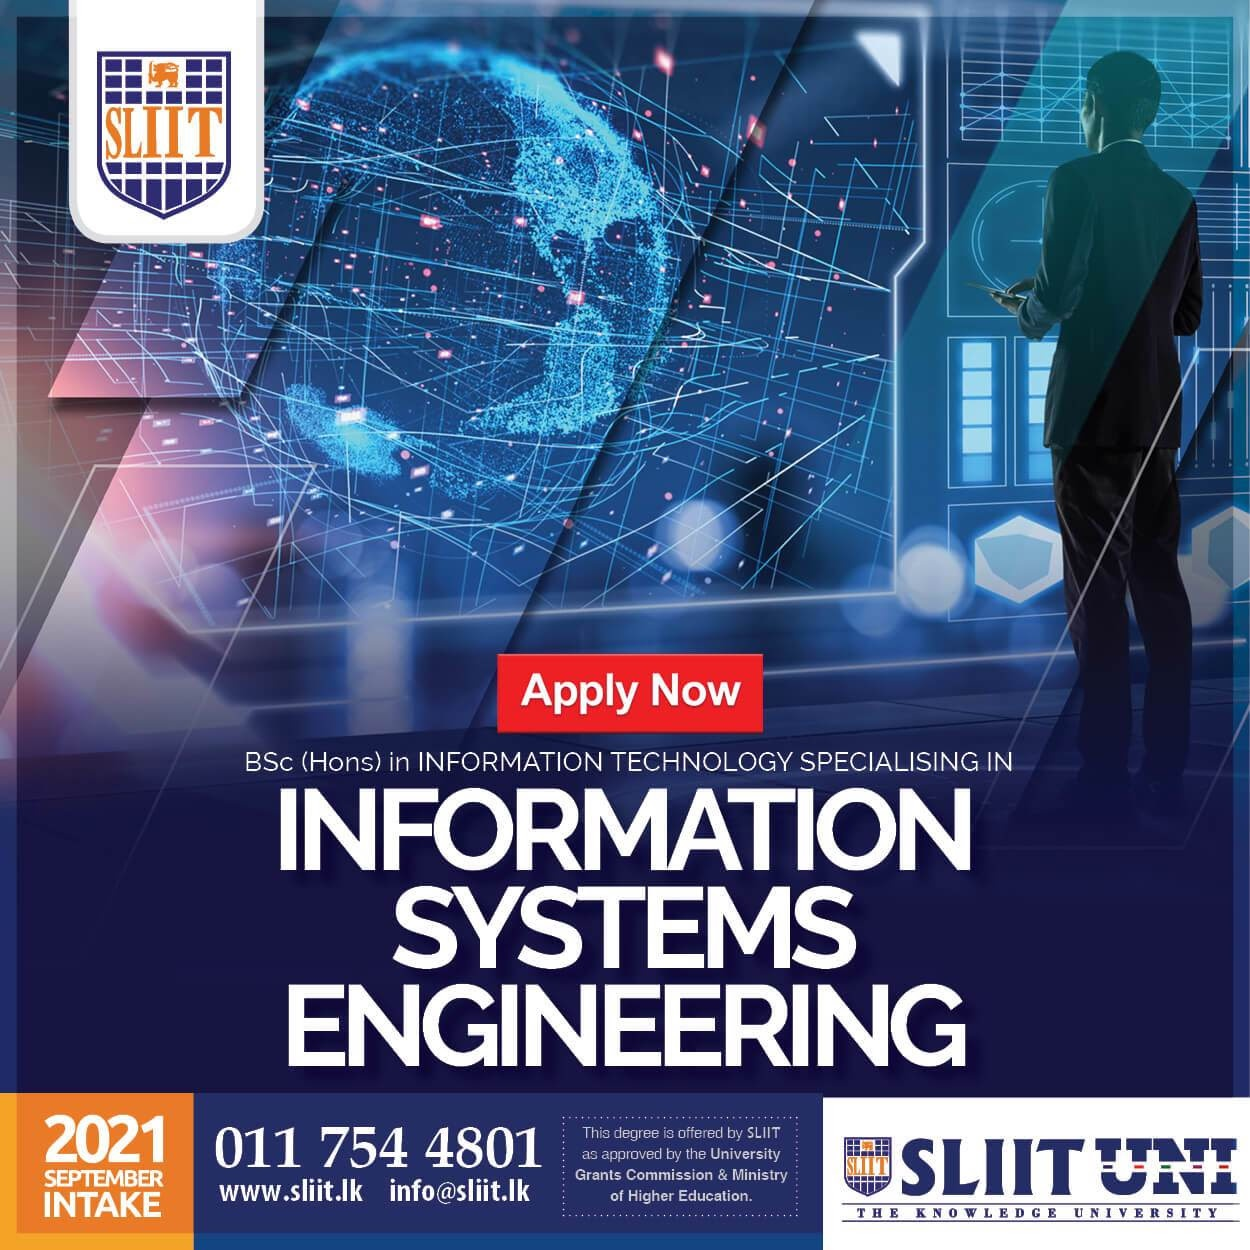 BSc (Hons) in Information Systems Engineering Degree Programme at SLIIT